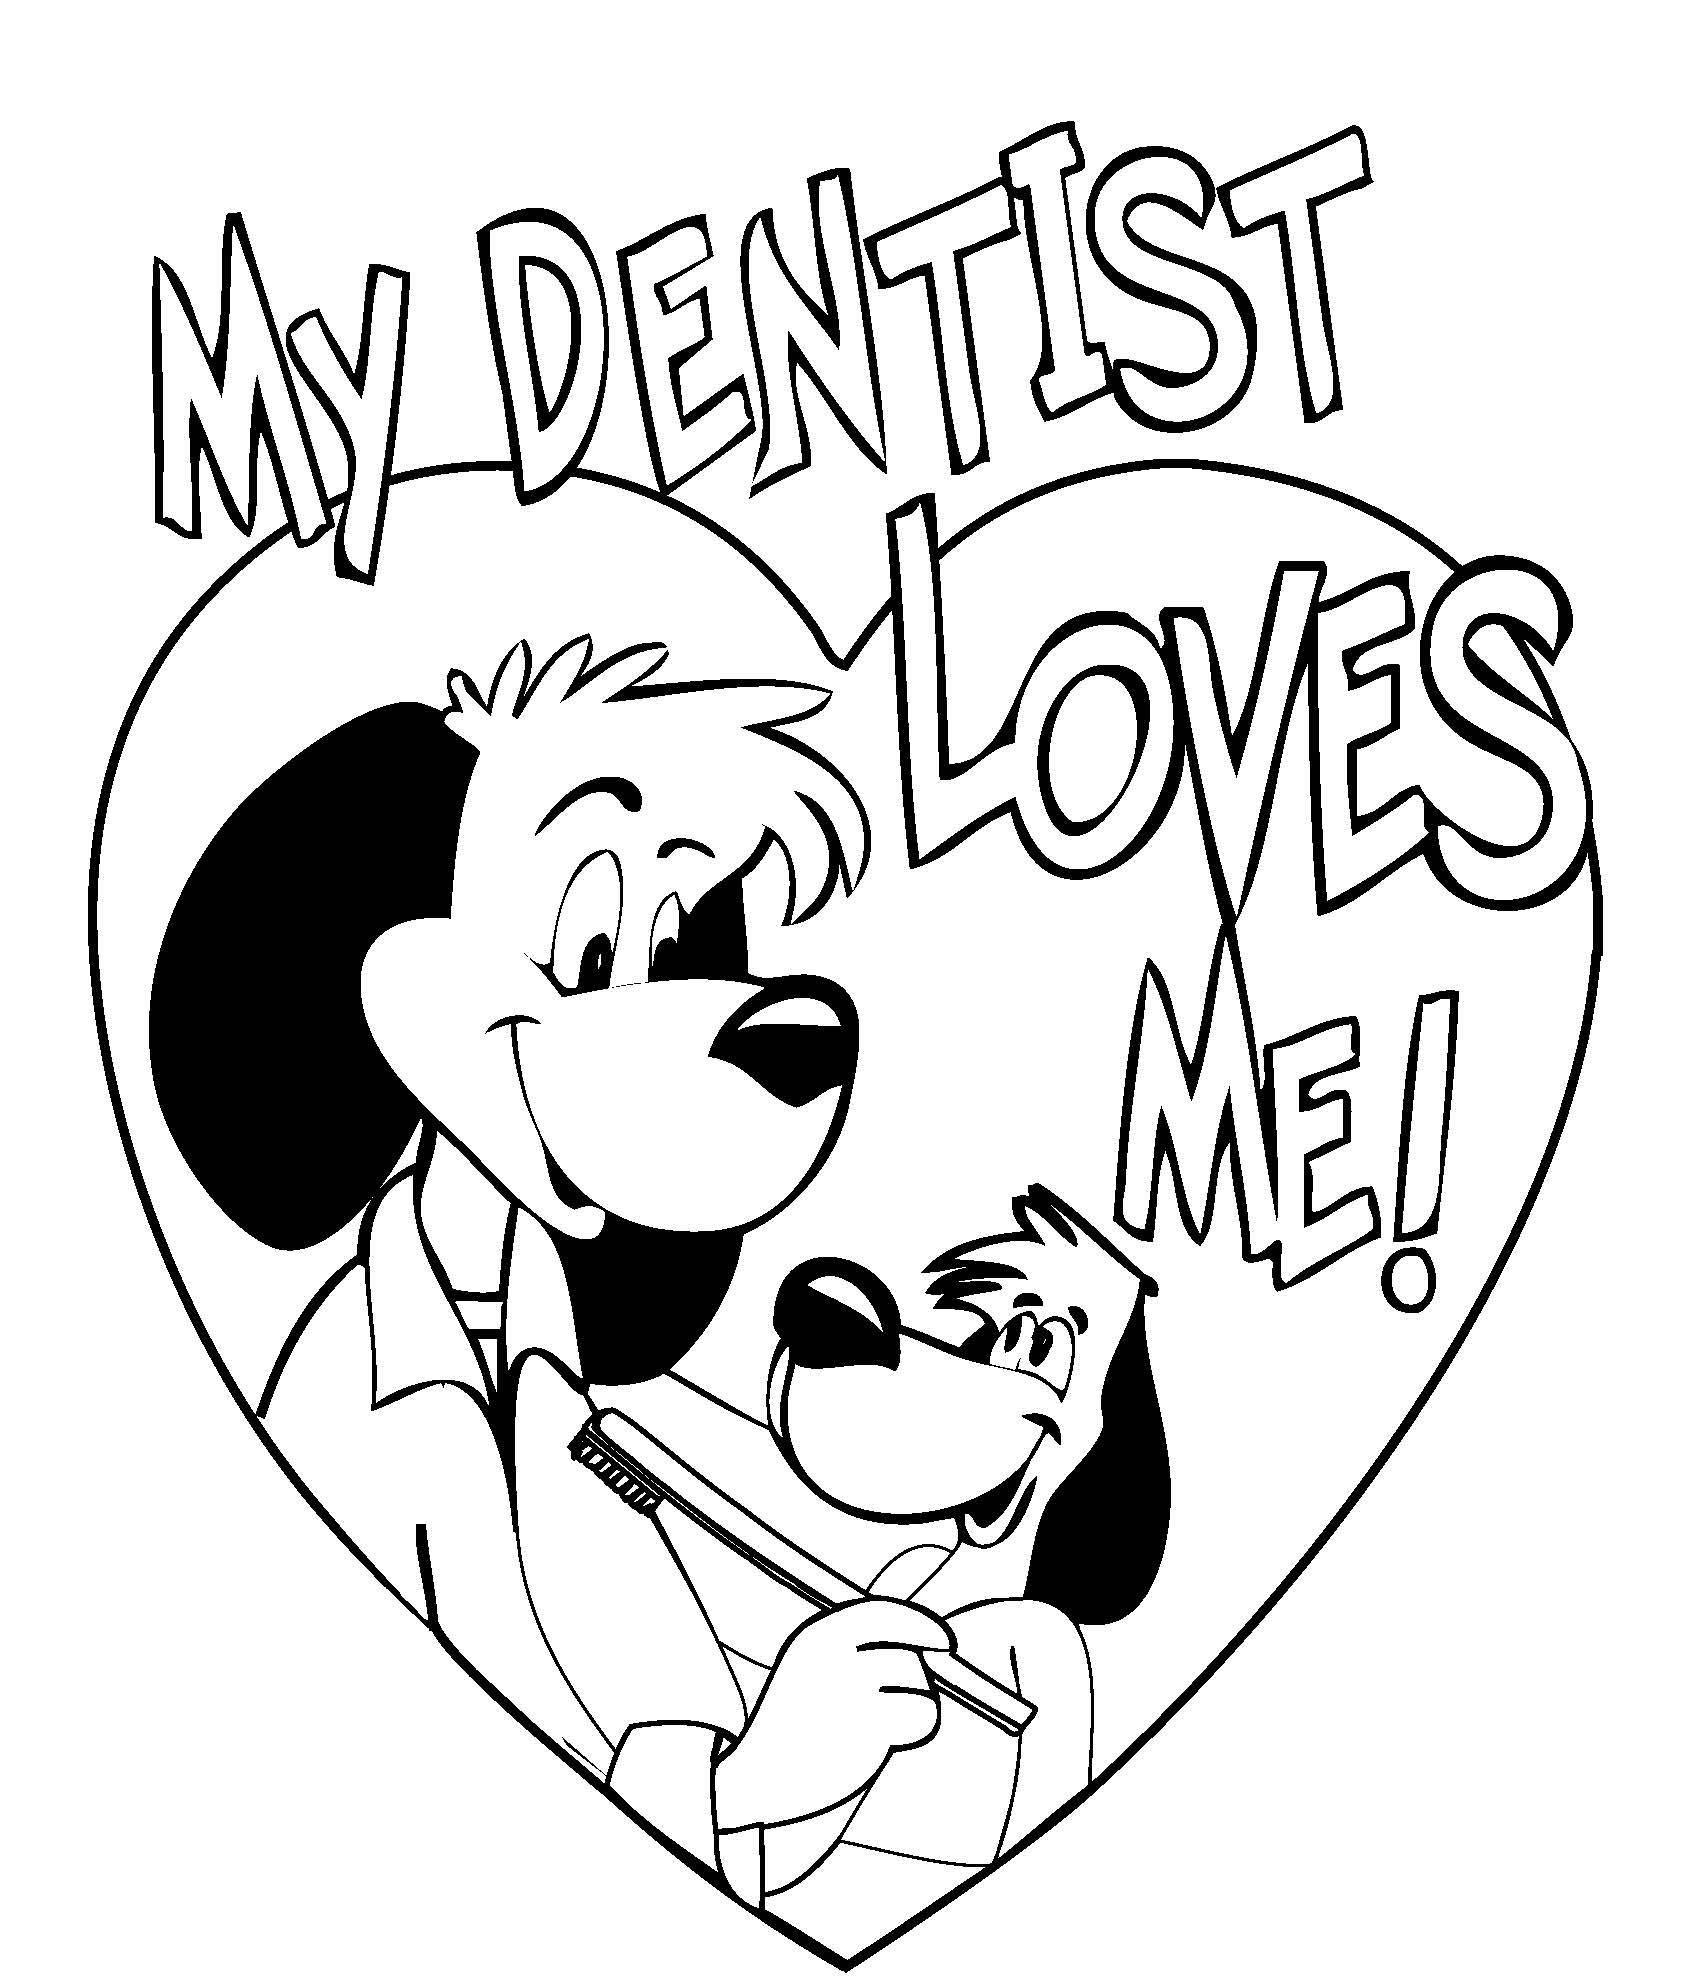 Dentist Coloring Pages for Kids - some Really Cute Dental Coloring Pages Dds Pinterest to Print